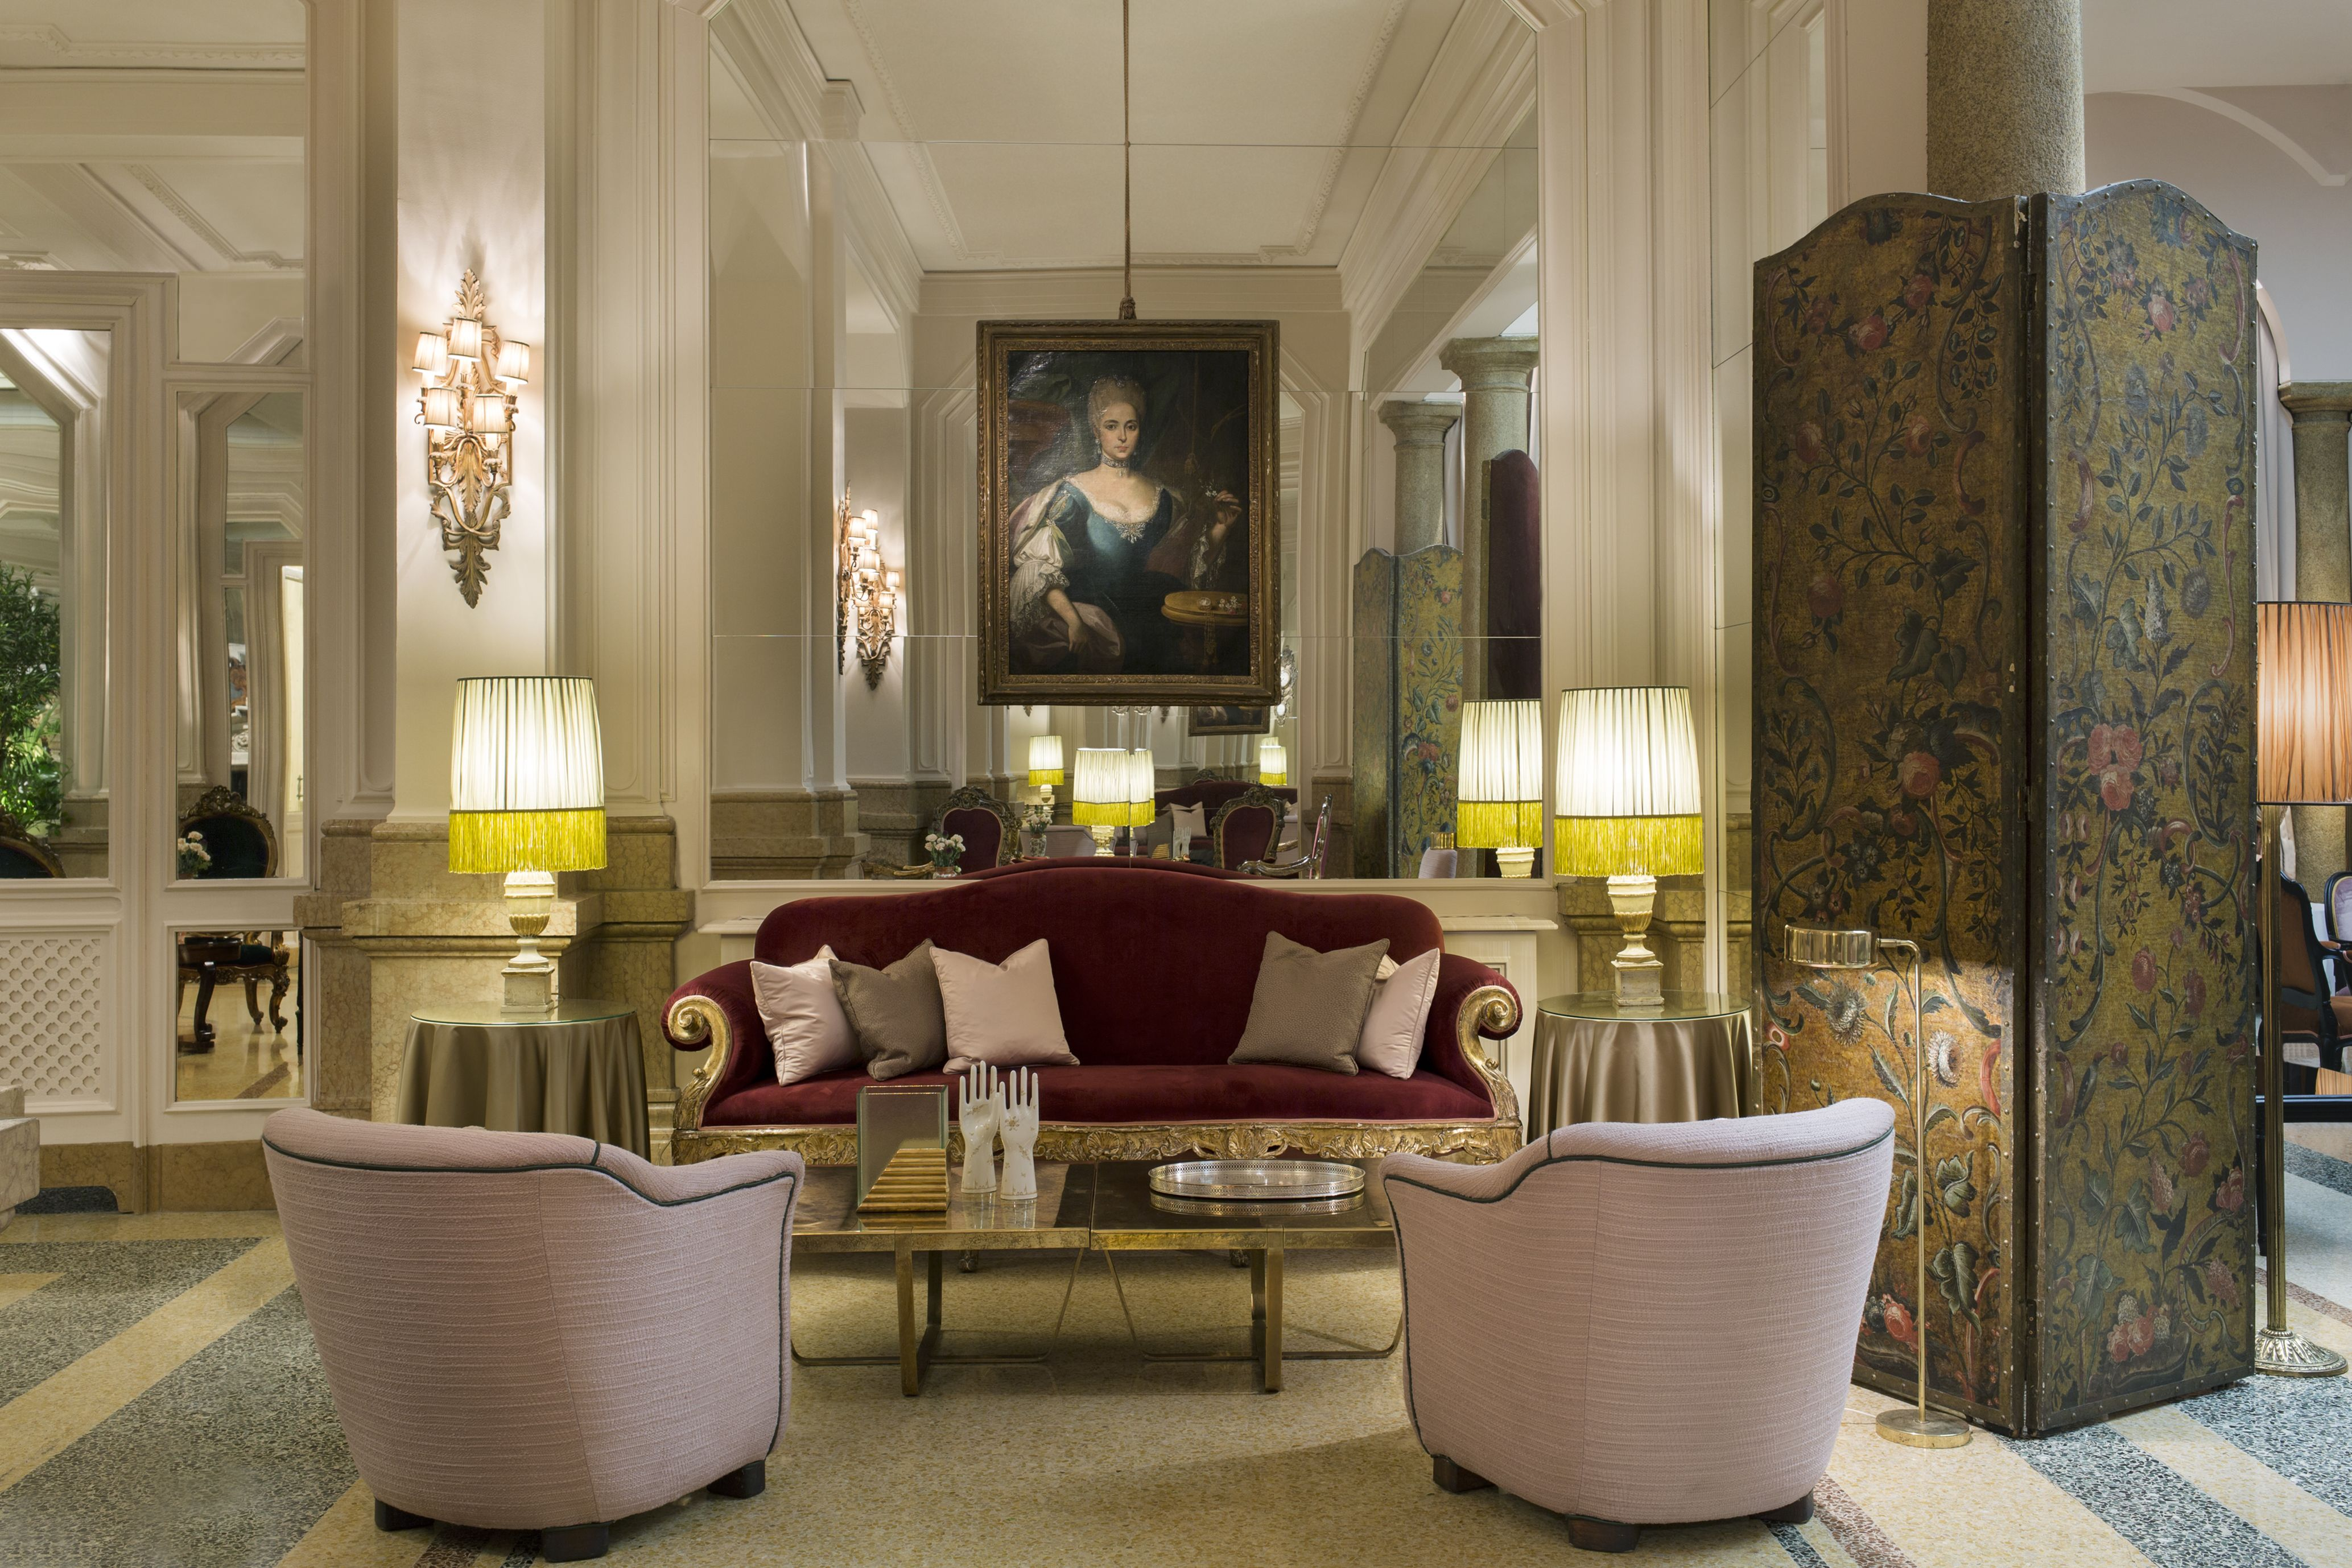 10 Italian Interior Designers You Need To Know italian interior designer 10 Italian Interior Designers You Need To Know dimore studio